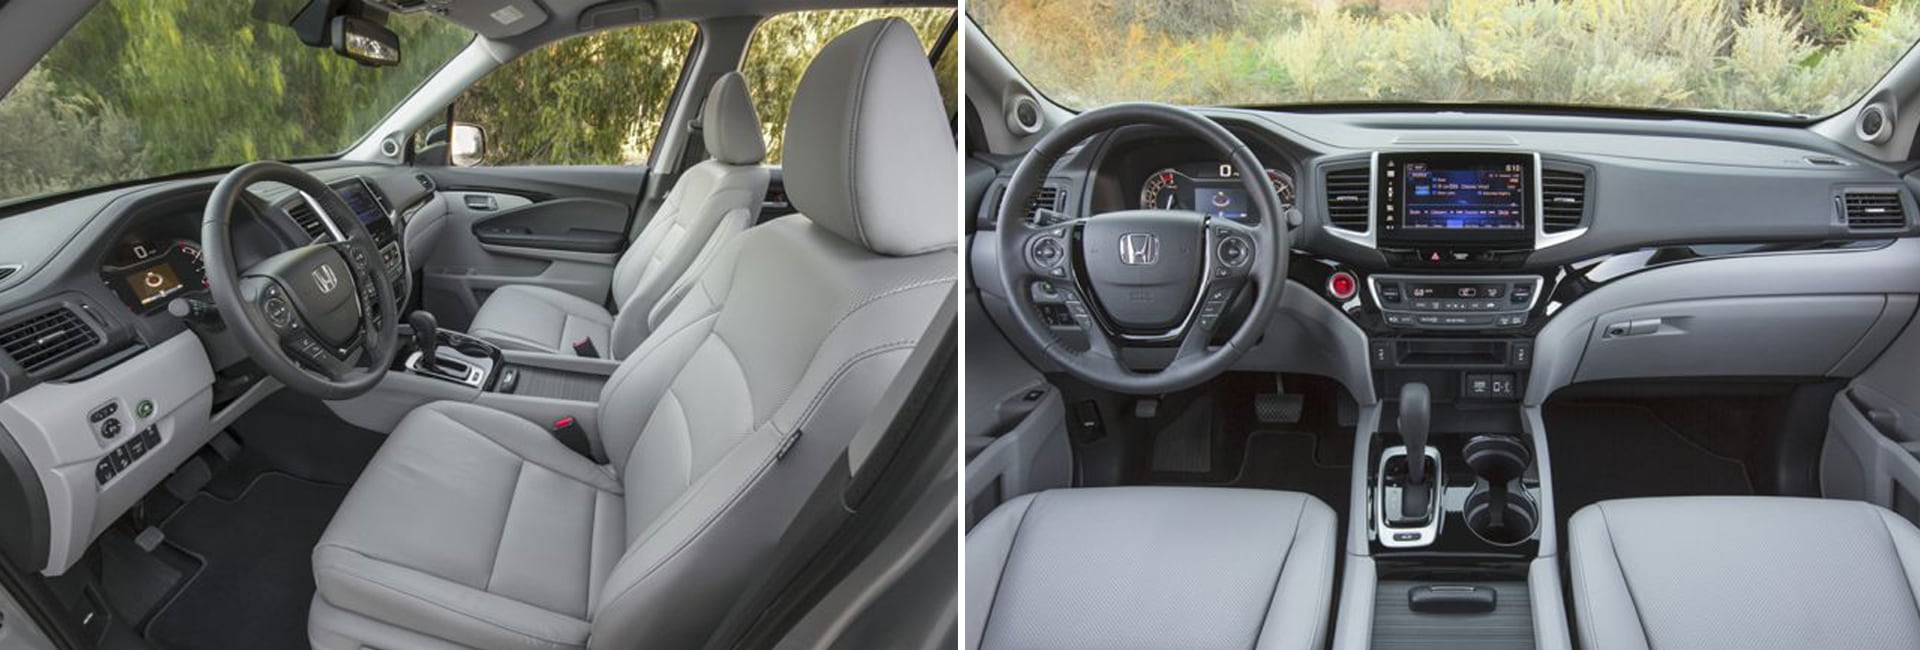 2018 Honda Ridgeline interior Features